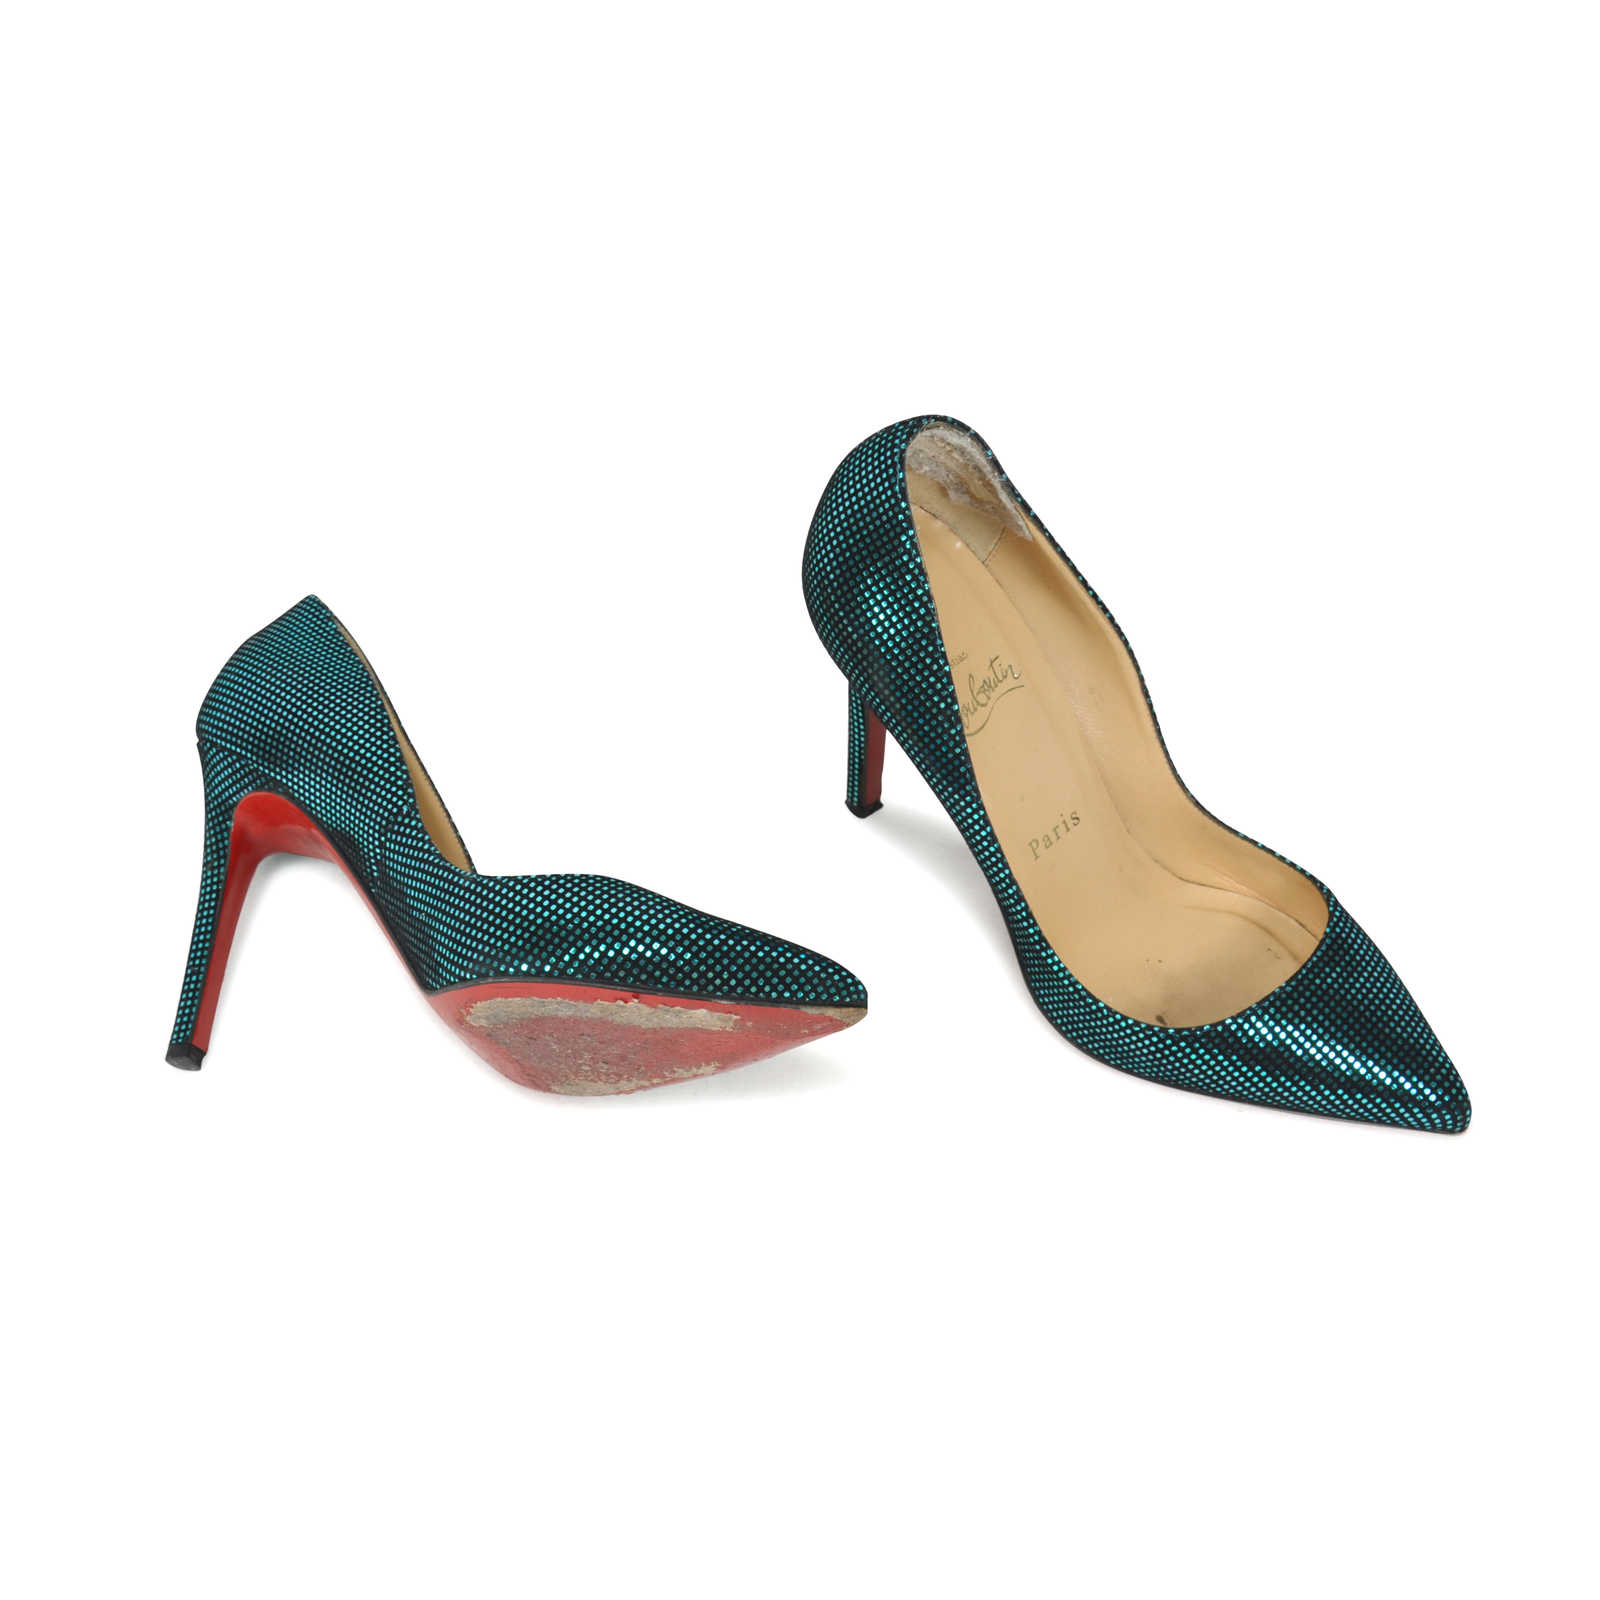 timeless design b969b e1350 Authentic Second Hand Christian Louboutin Pigalle 100 Suede ...